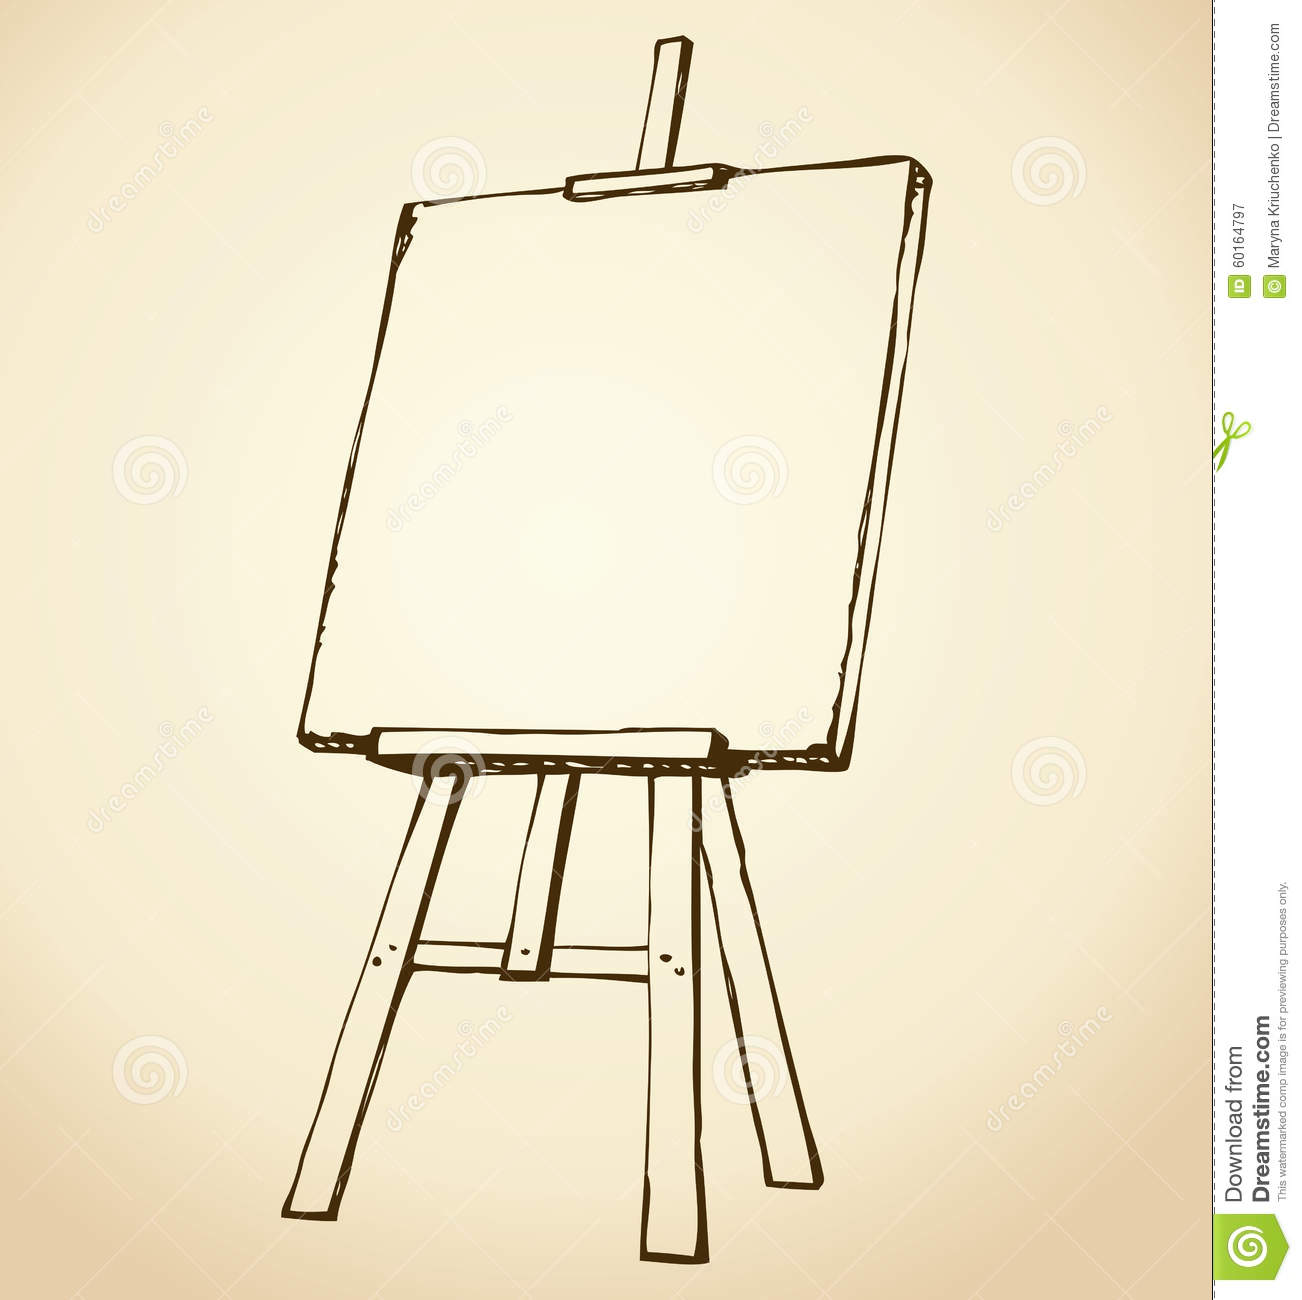 Drawing Lines In Jcanvas : Images about art ink easels on pinterest